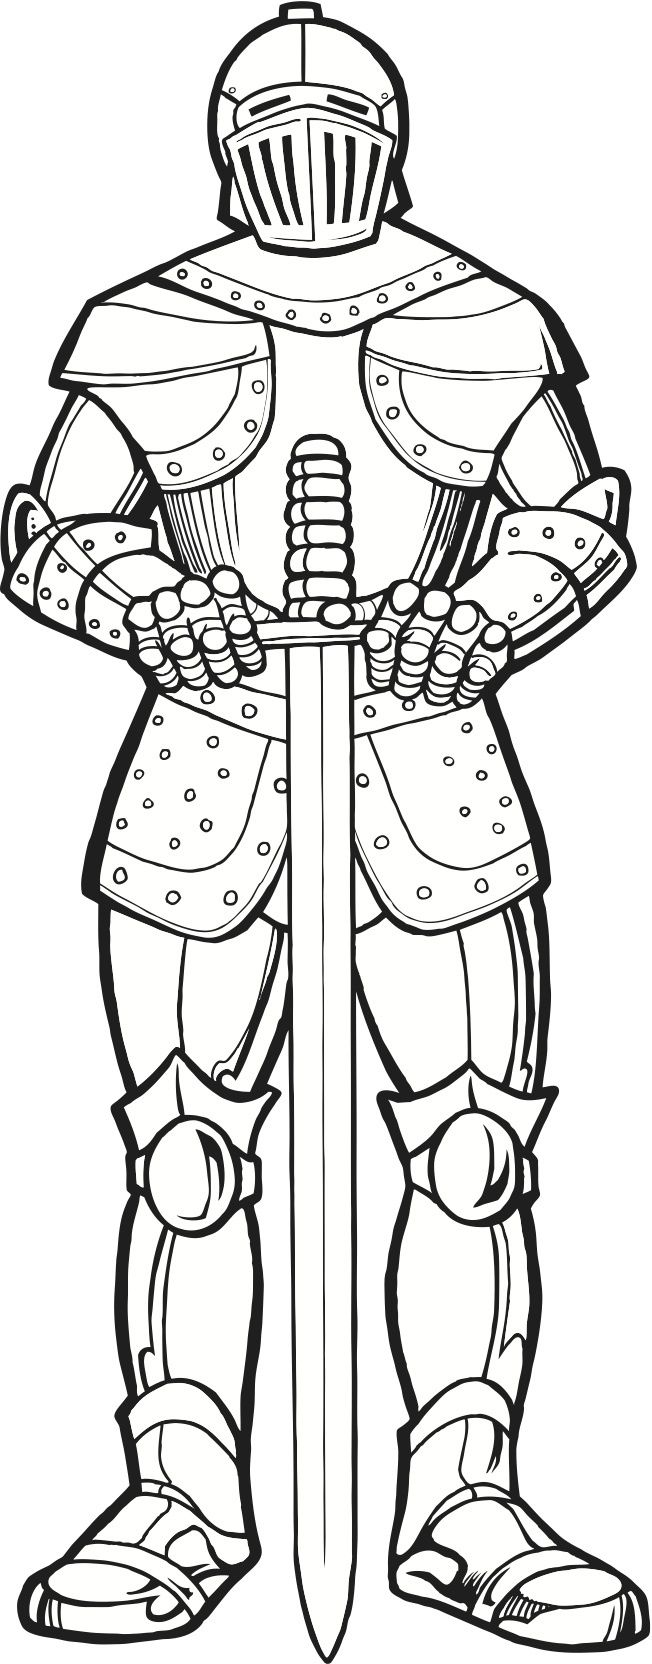 29fd9e2e3de211738faa950aaa3a162f Knights Coloring Pages - knight coloring pages